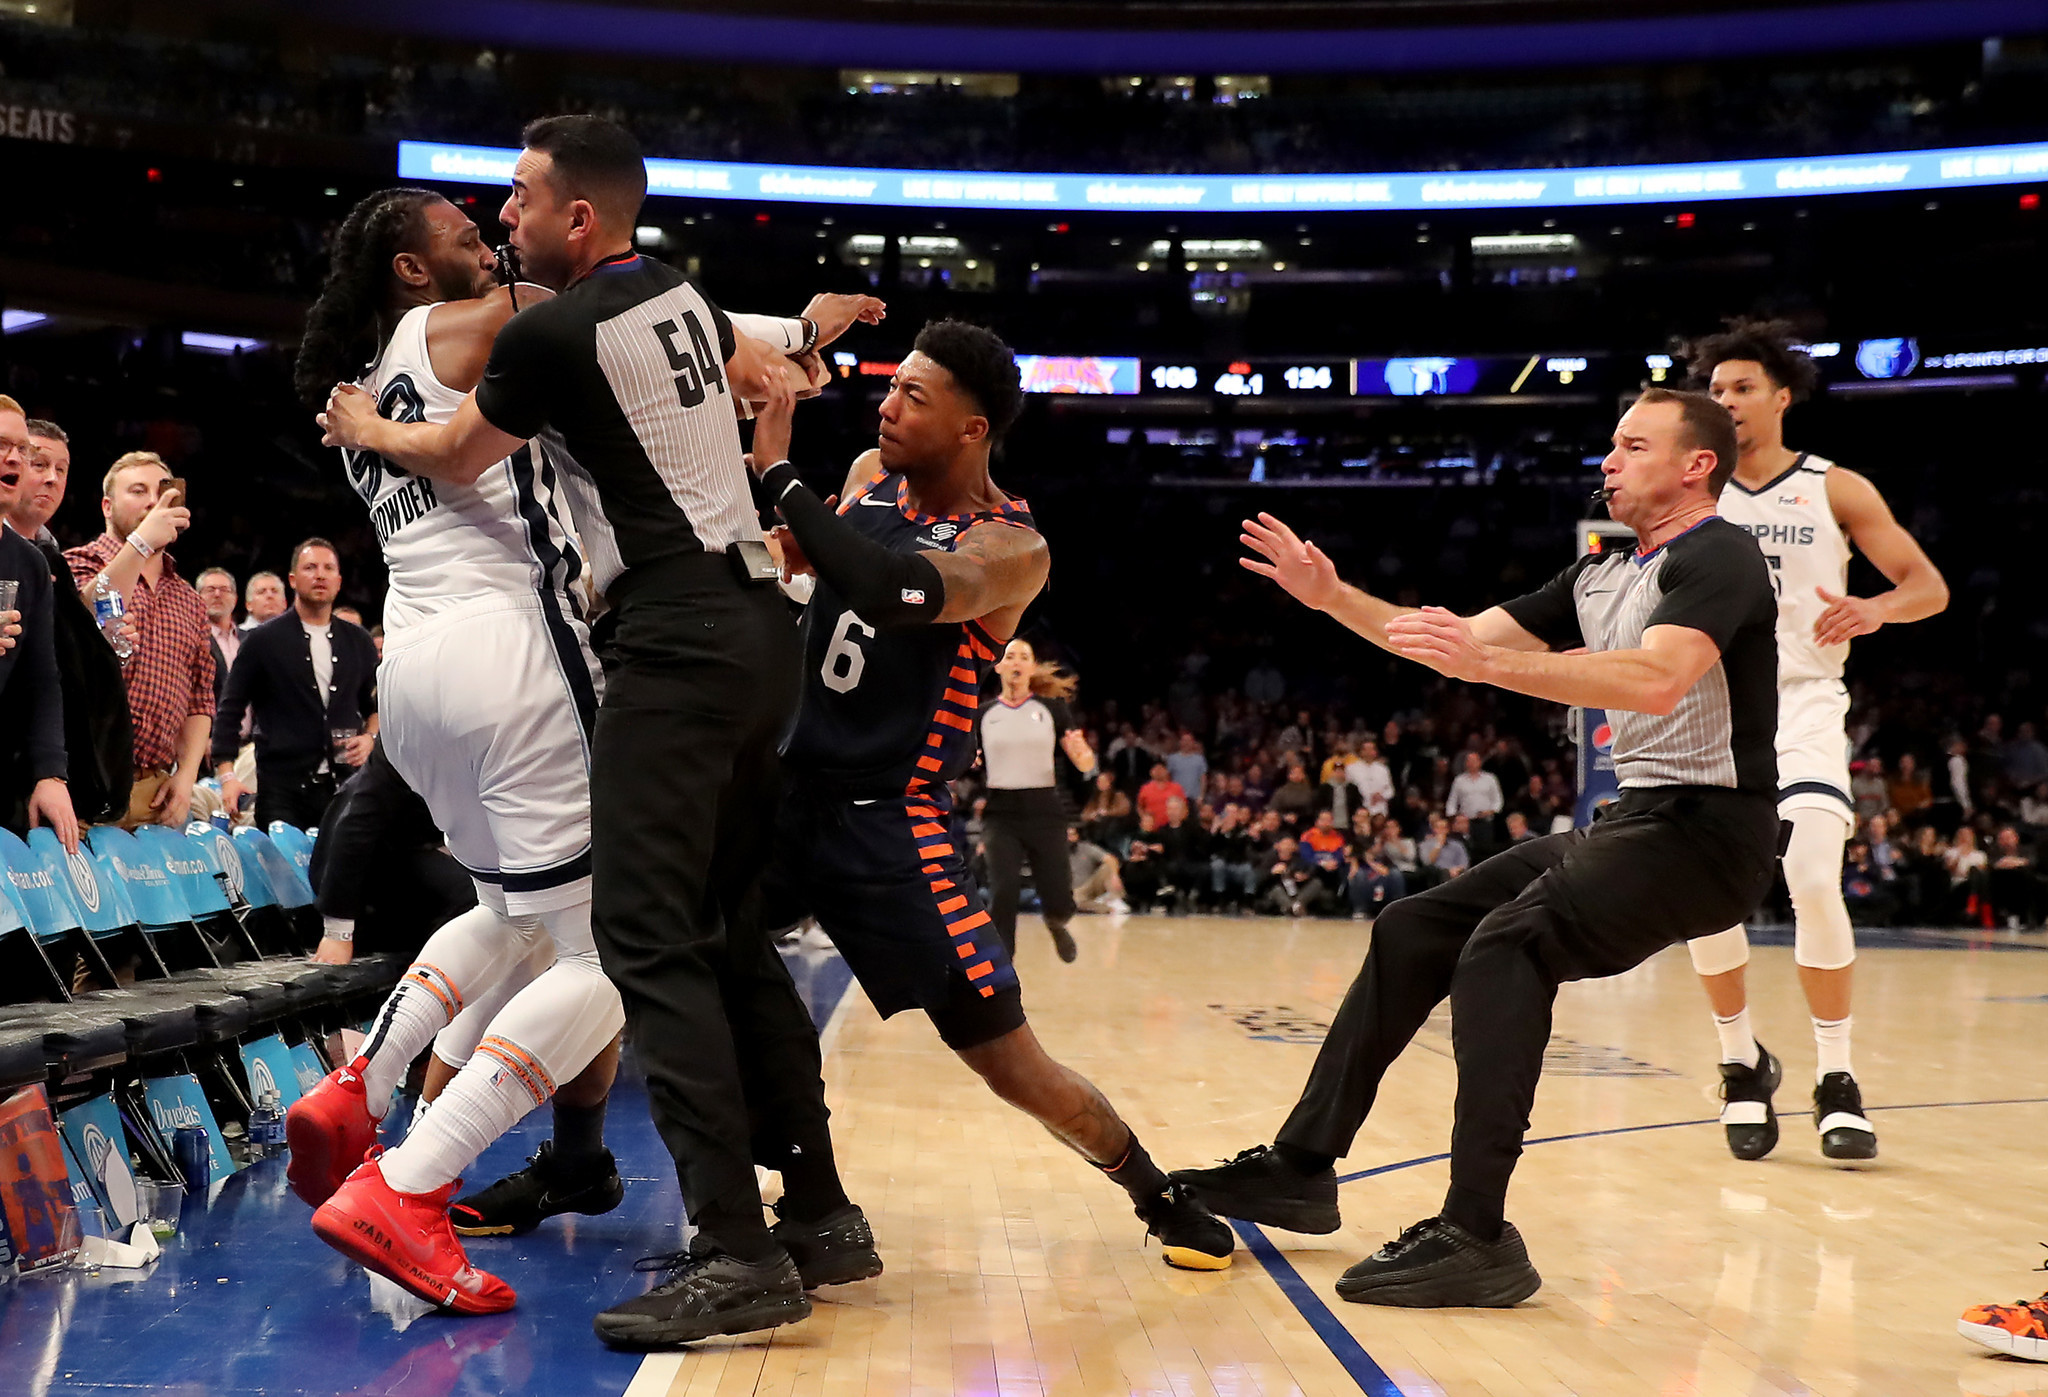 Knicks G Elfrid Payton suspended 1 game for role in Wednesday night's fight, Marcus Morris fined $35k: report